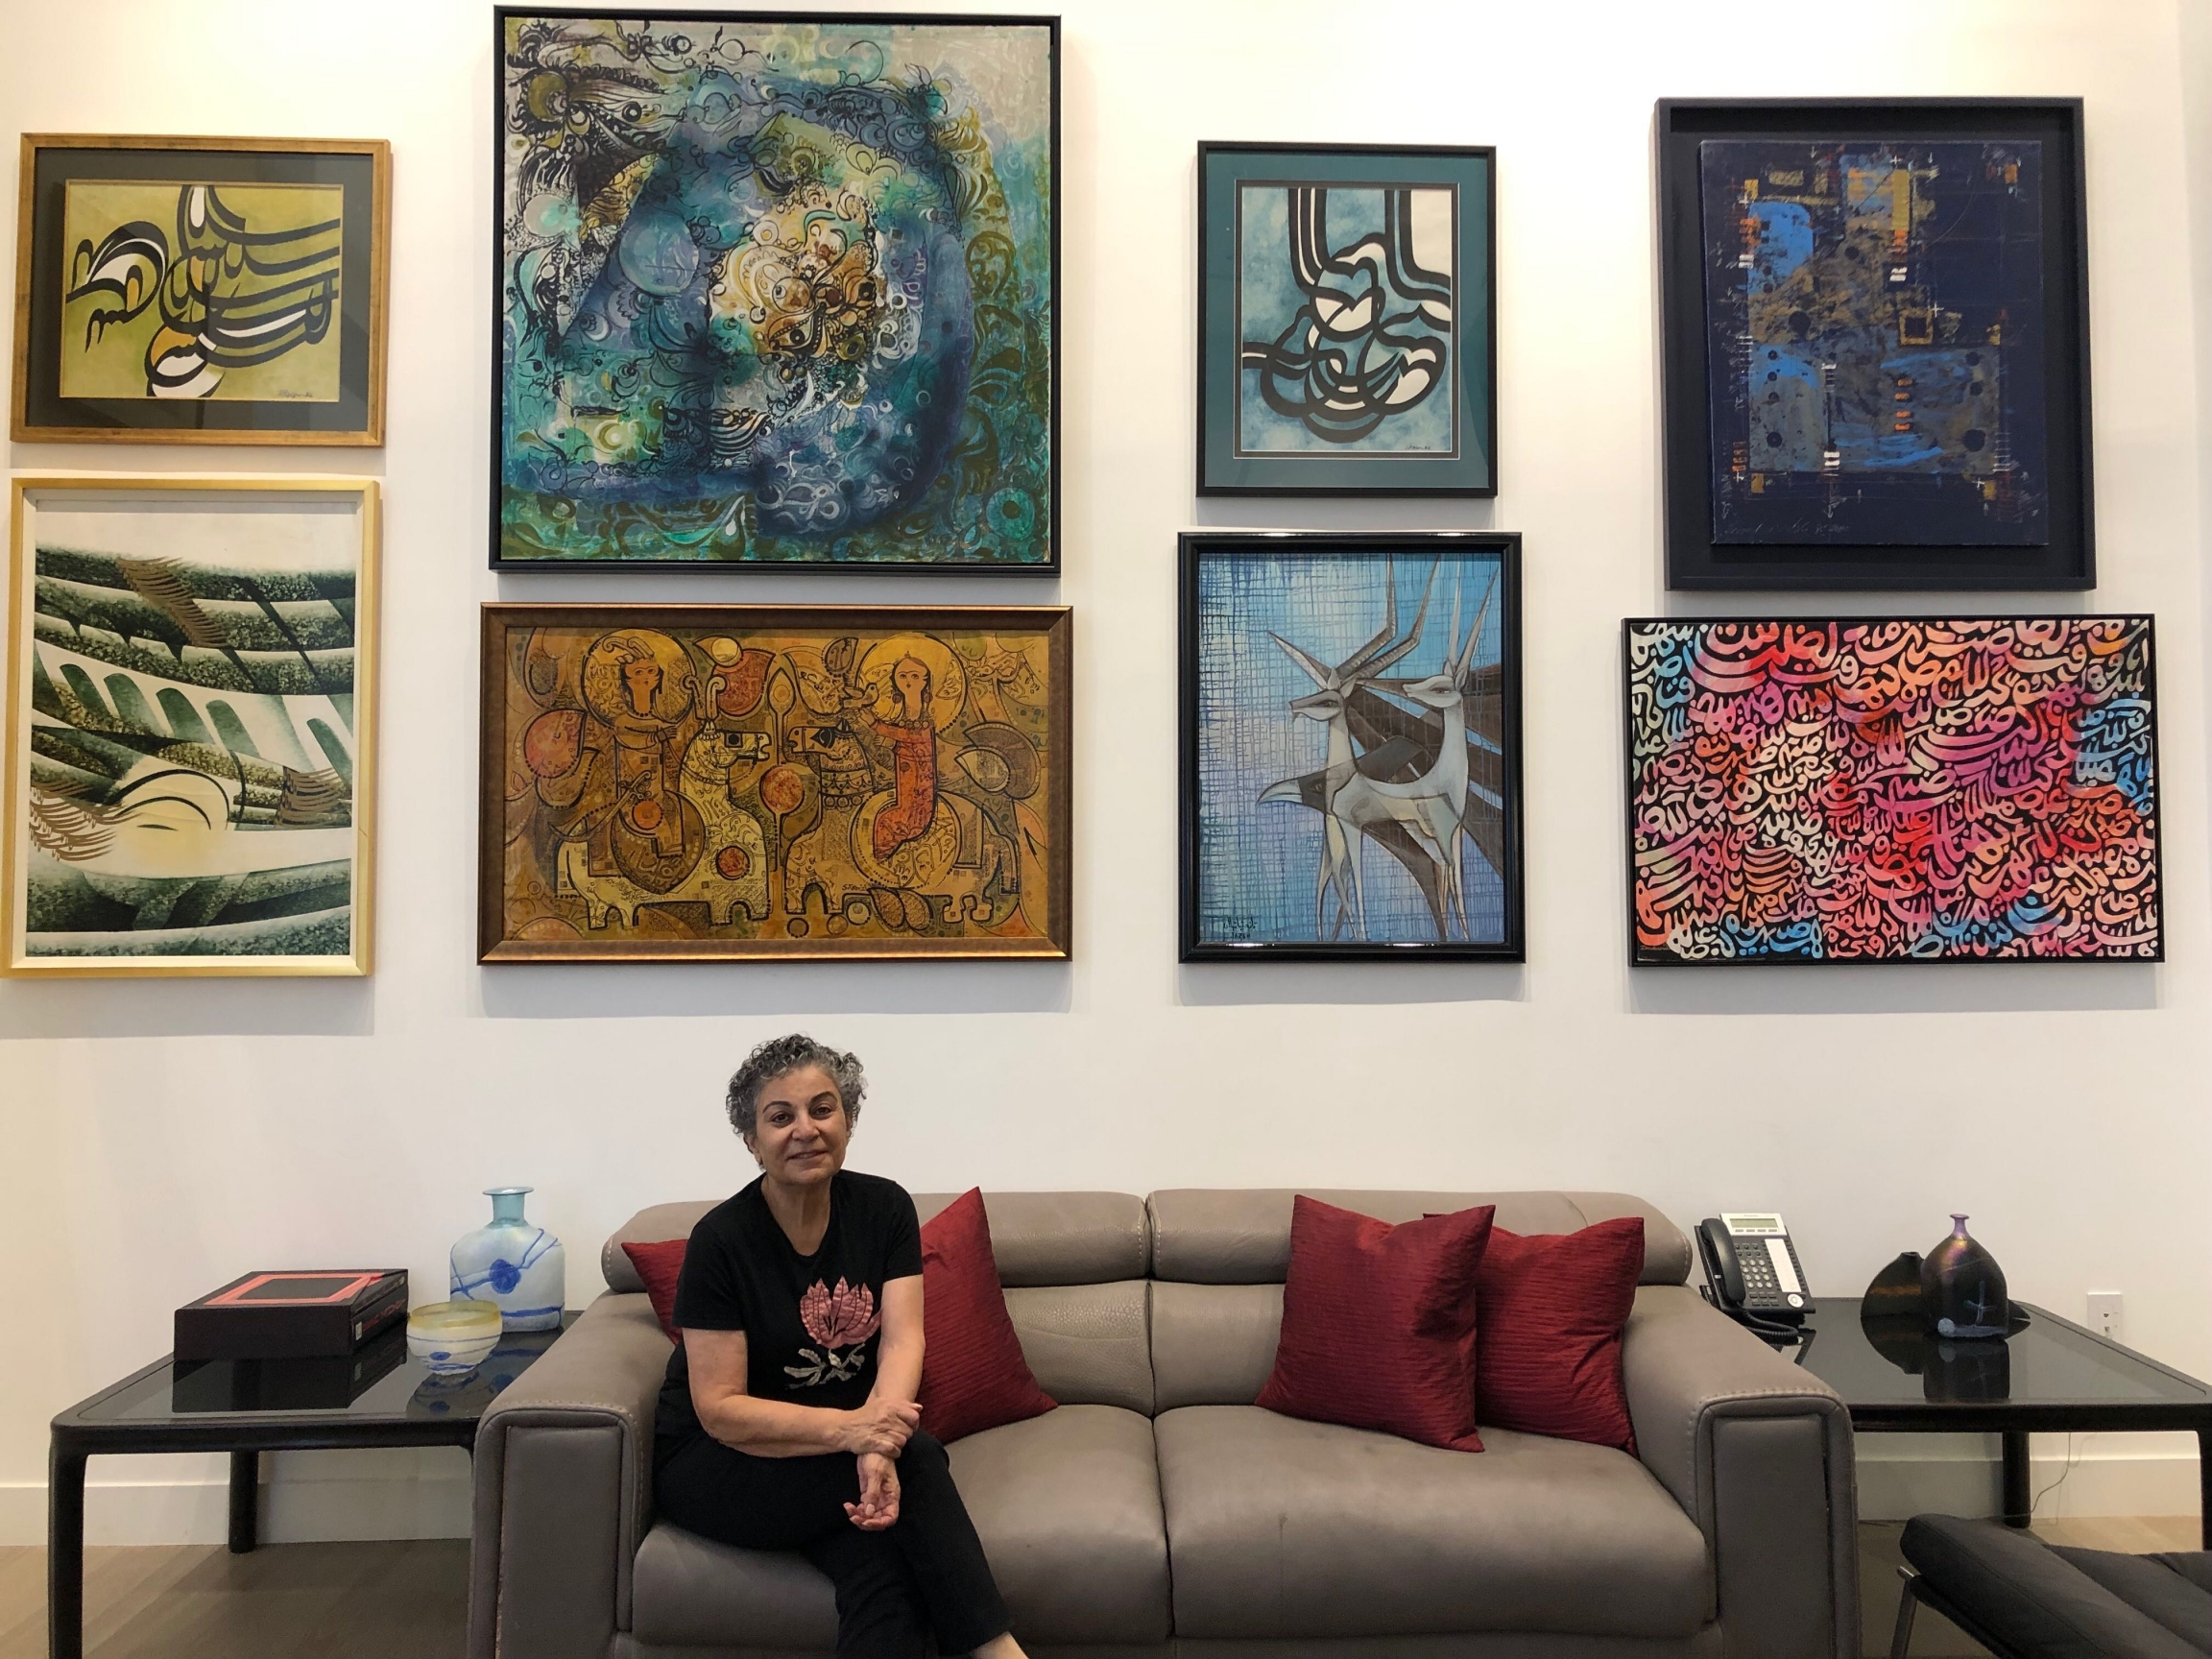 A woman sits on a couch with several works of art behind her.